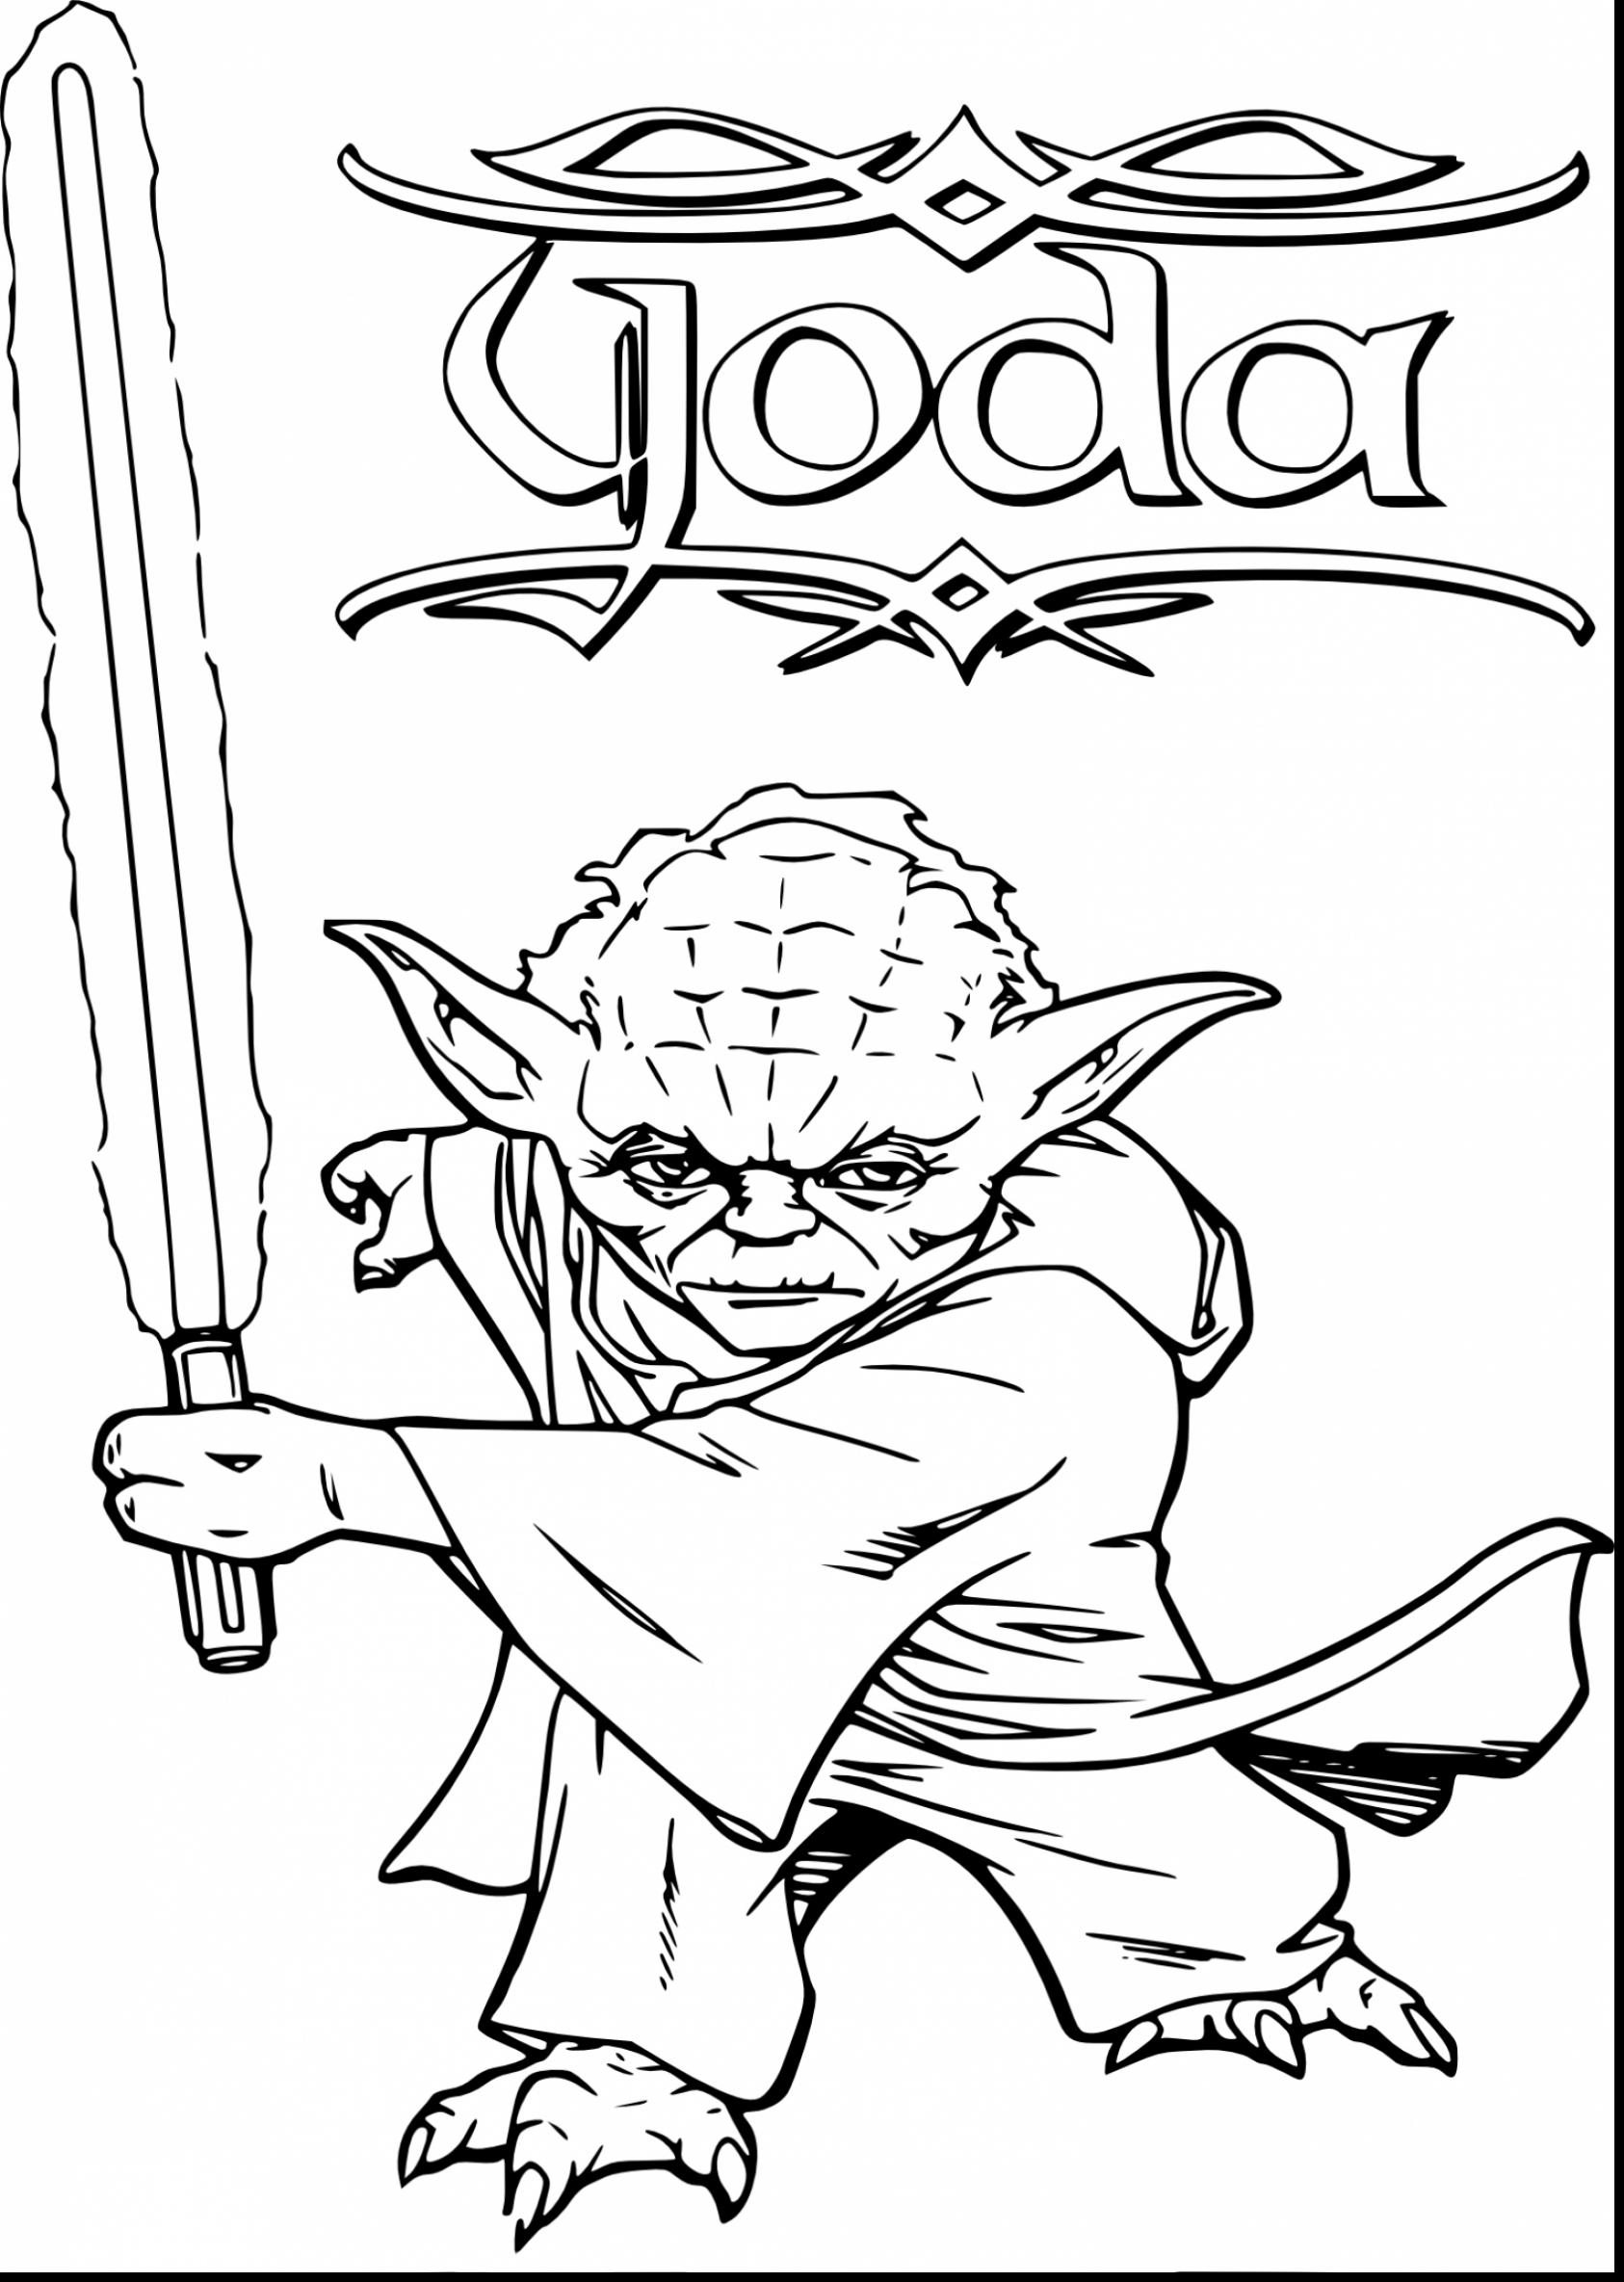 Star wars yoda drawing at free for for Yoda coloring pages